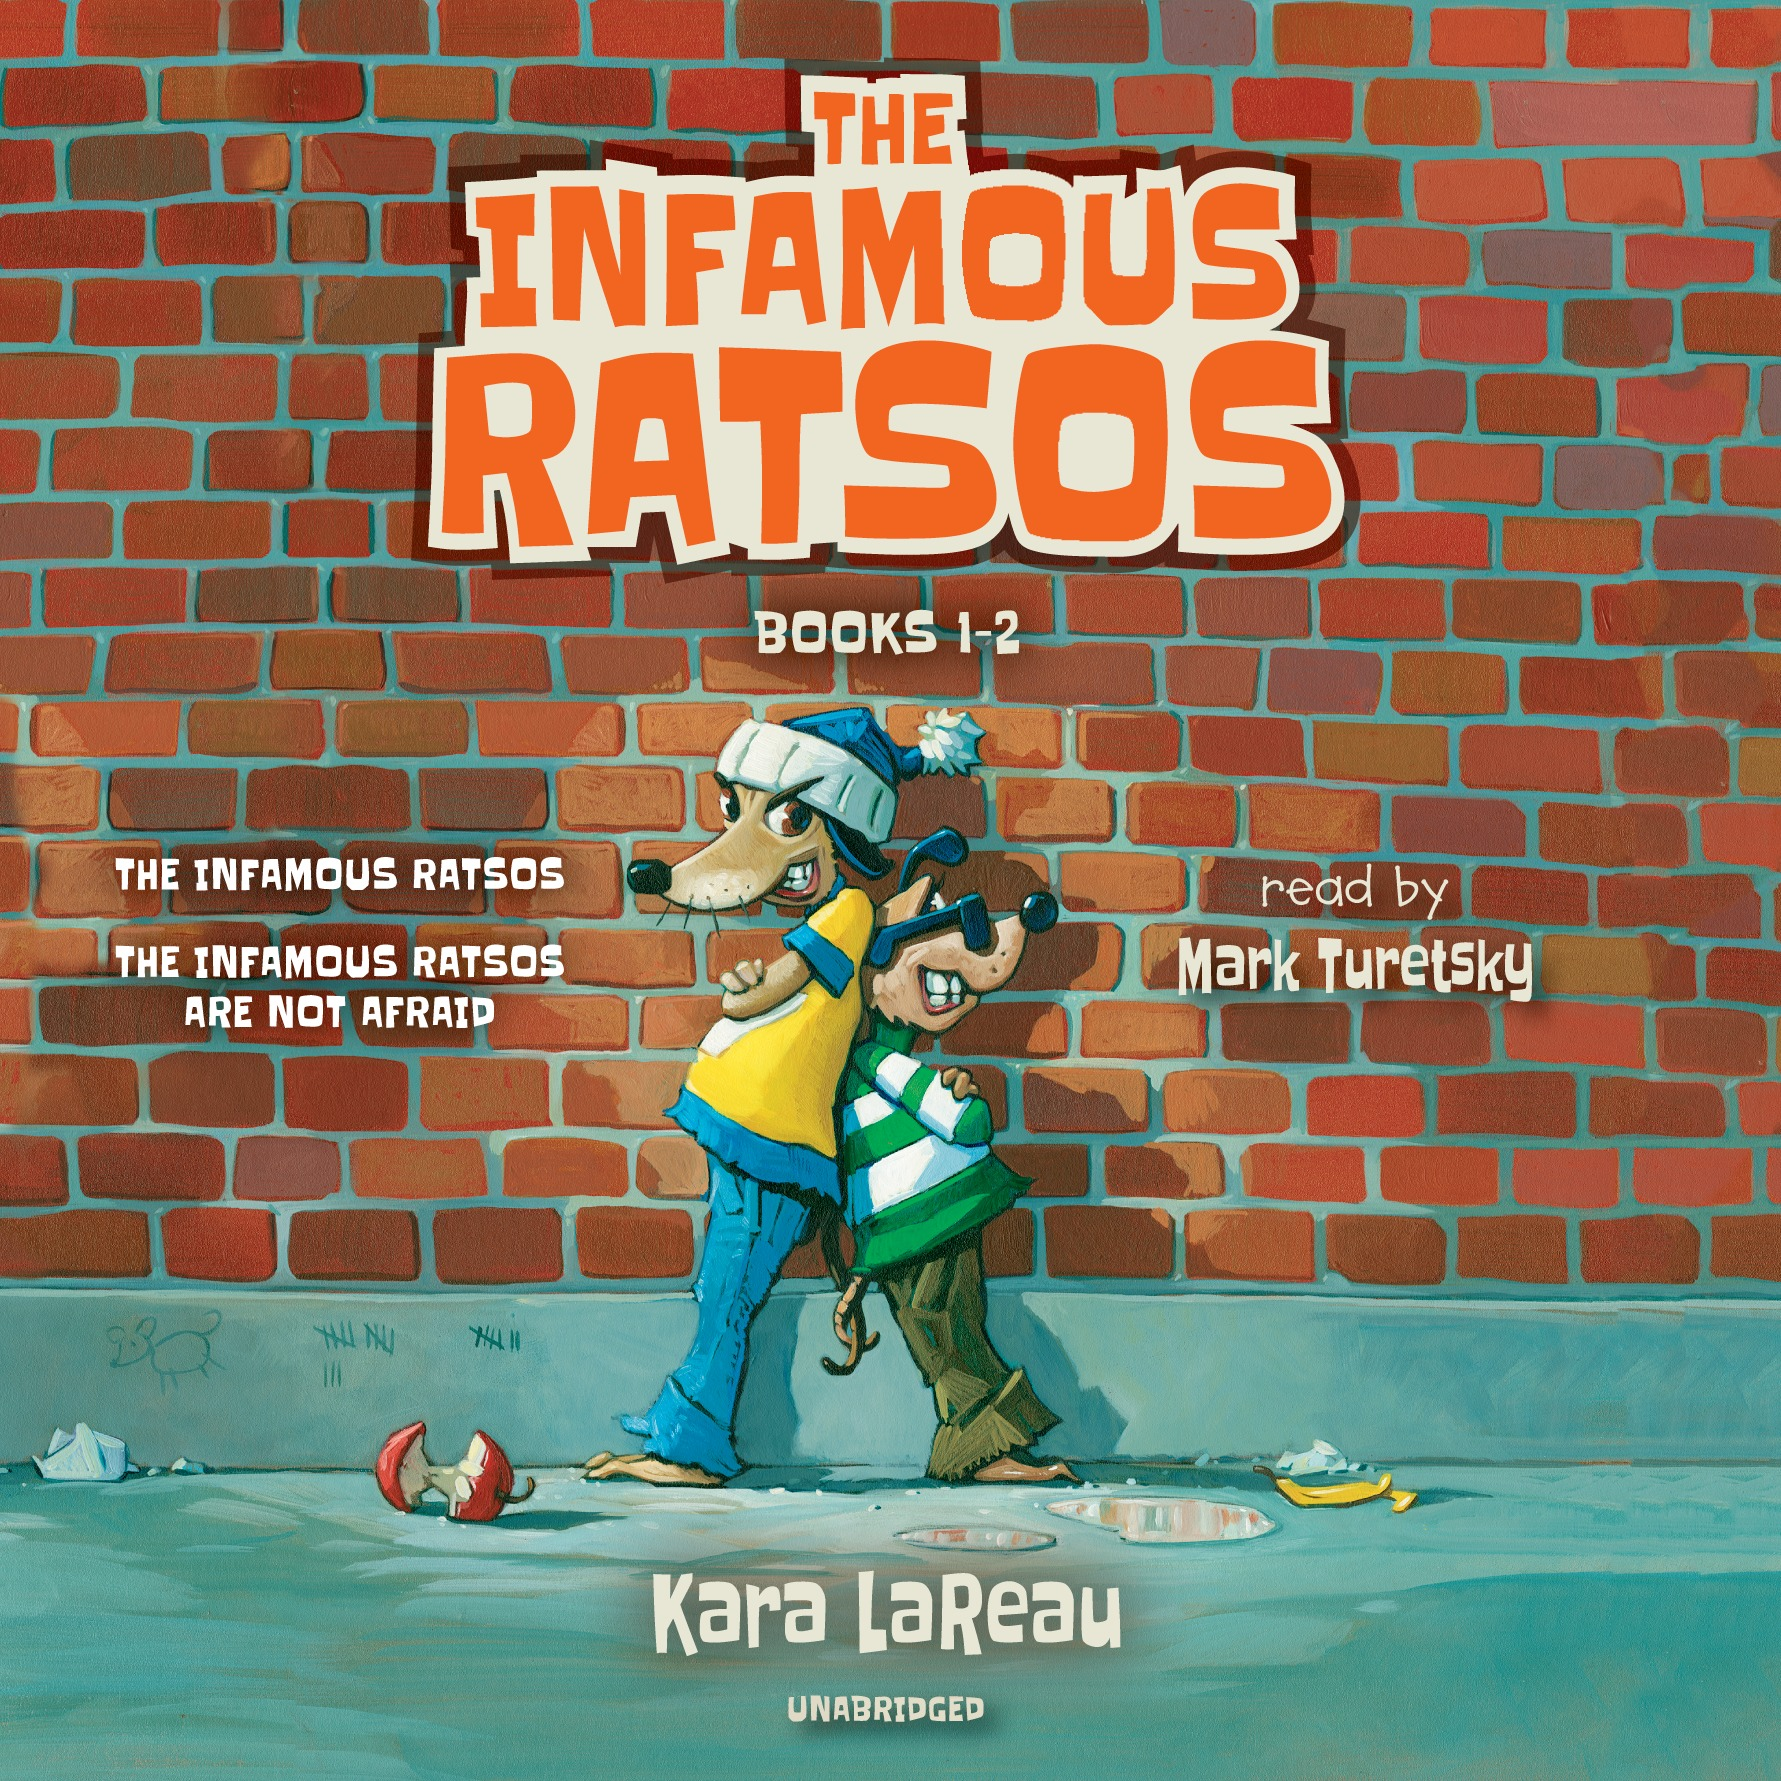 THE INFAMOUS RATSOS books 1-2 (1).jpg